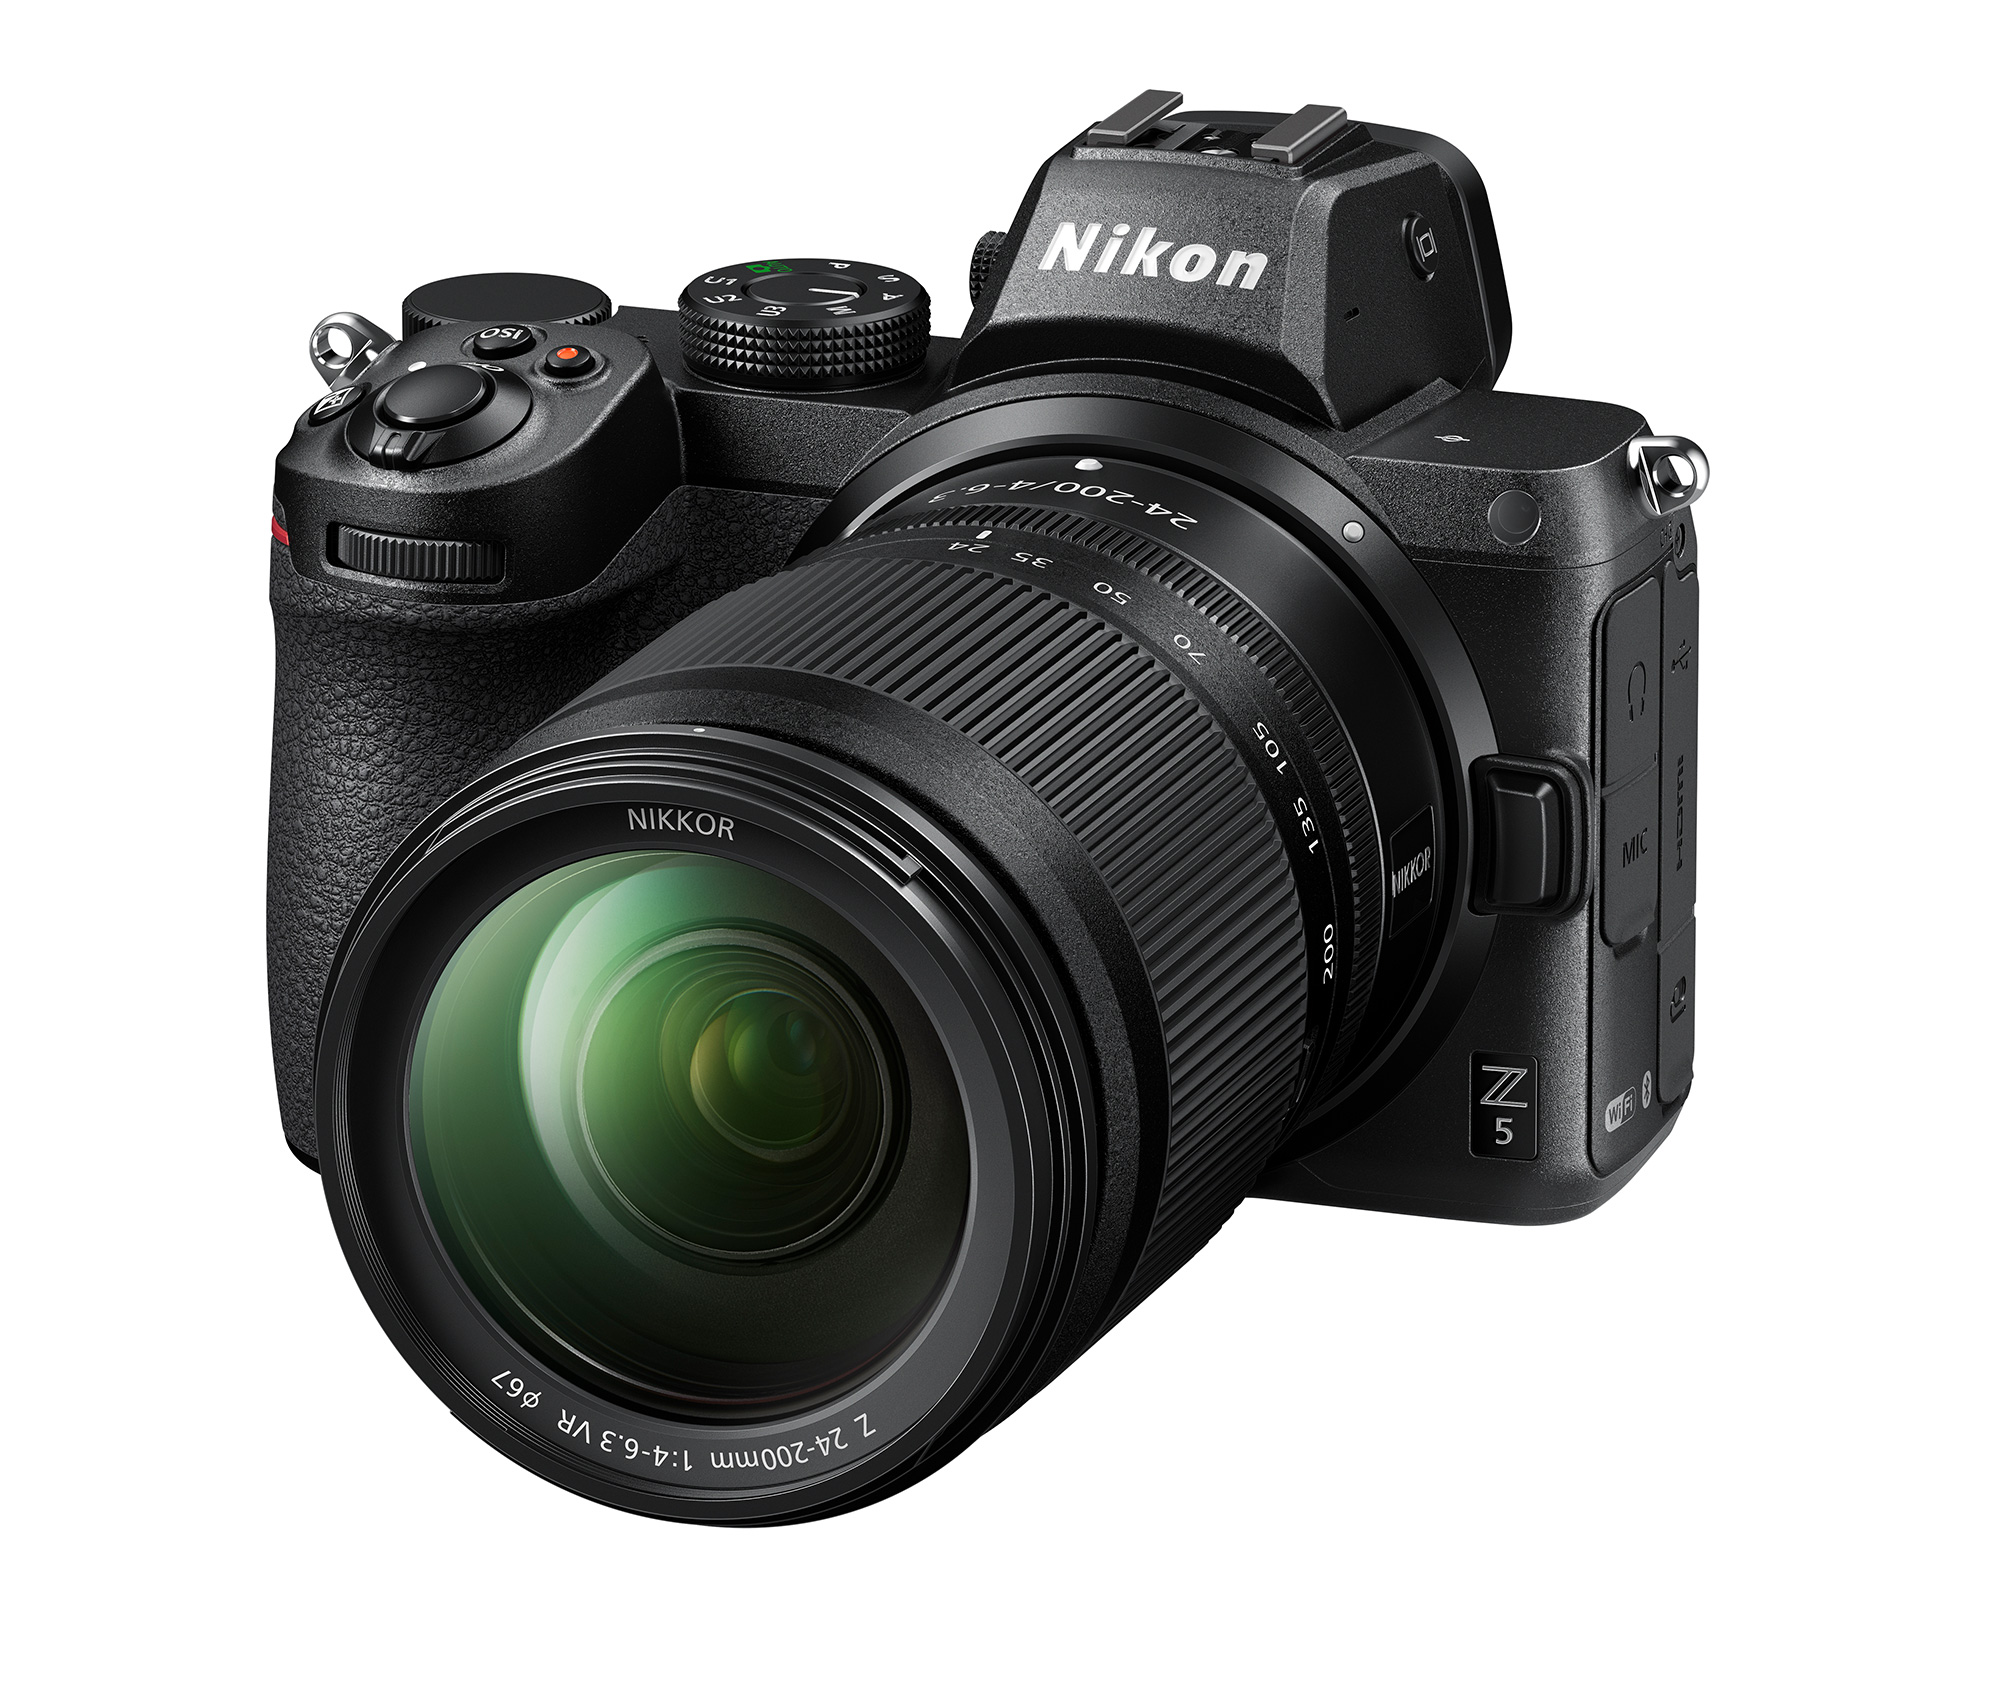 Nikon Z5: Powerful entry-level full format DSLM incl. sensor stabilisation, dual card slots and much